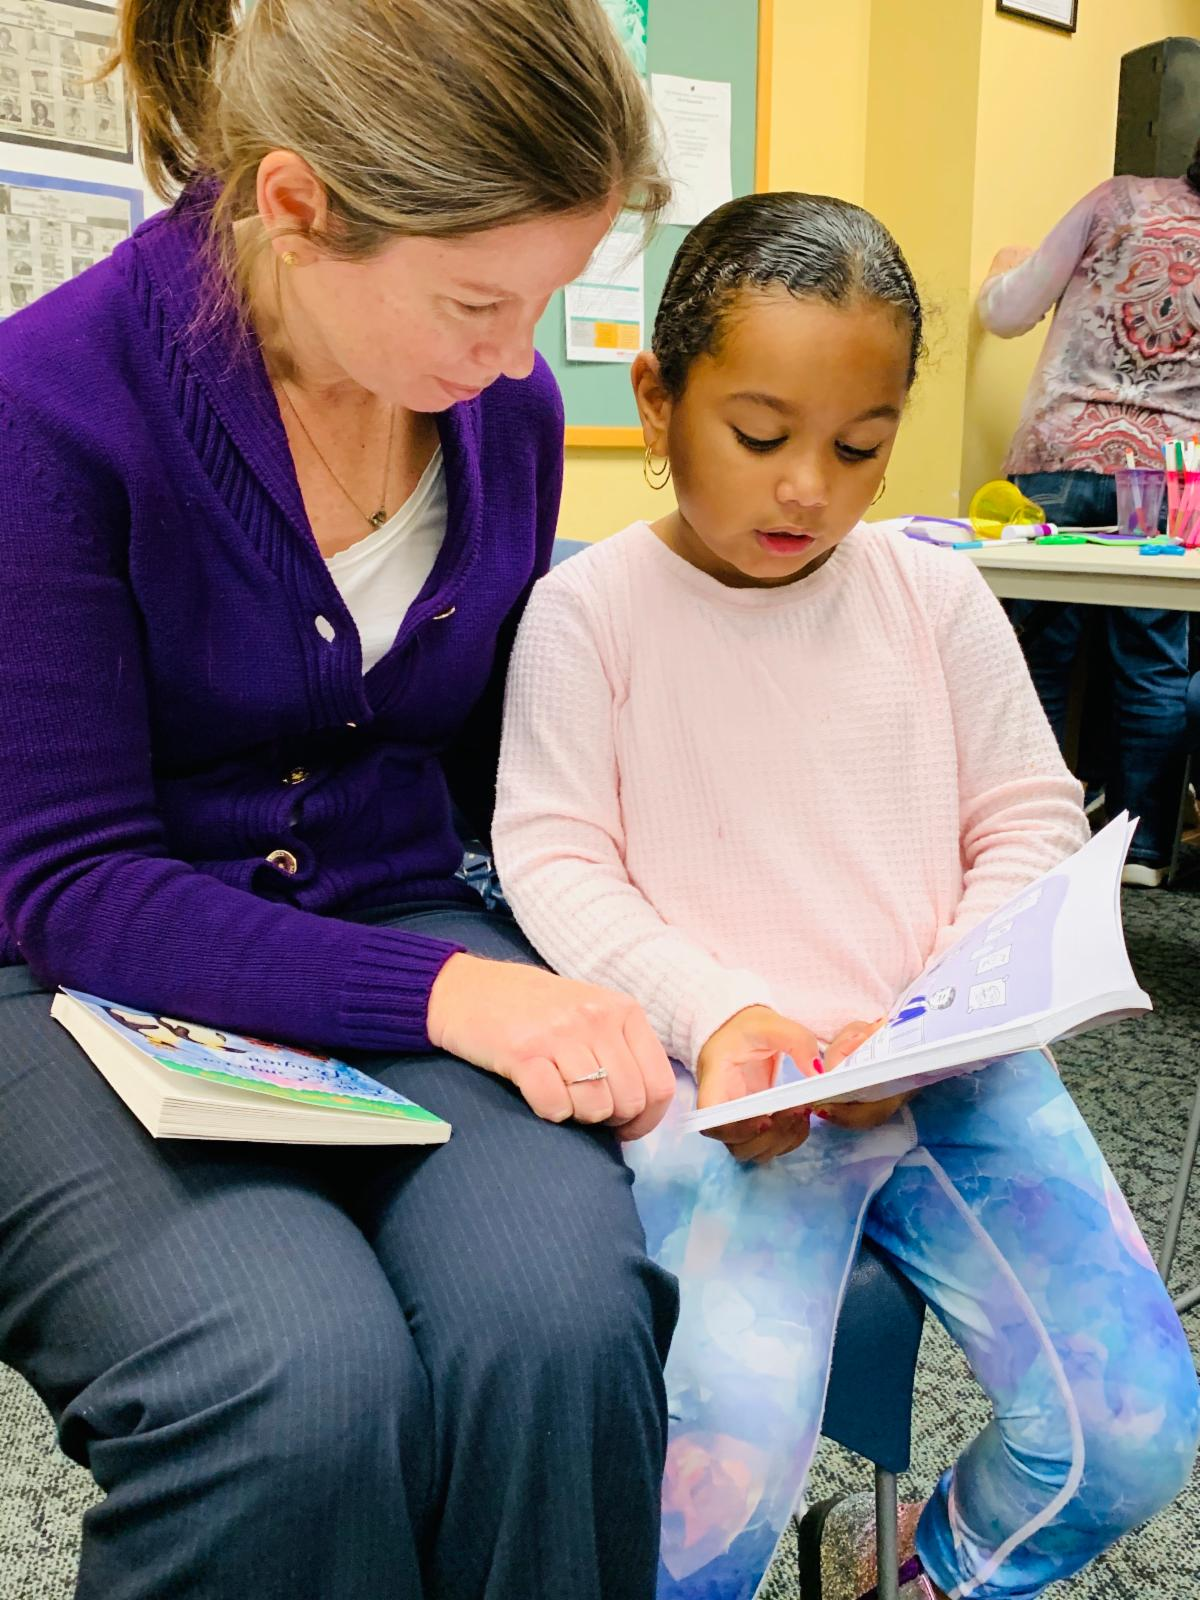 a picture of a little girl reading a book with an adult